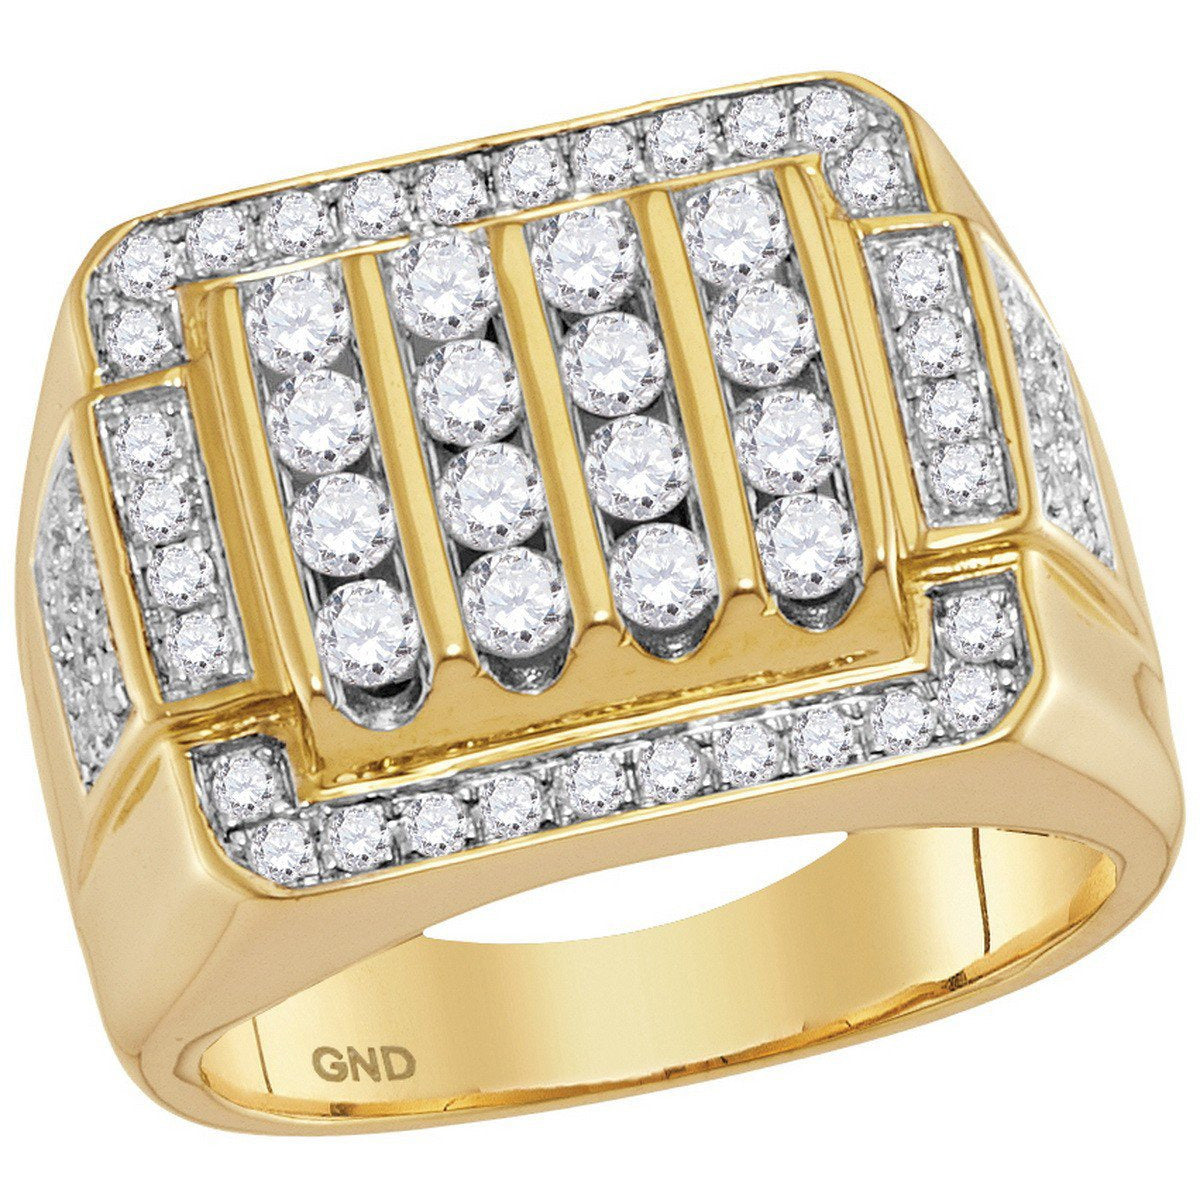 10kt Yellow Gold Mens Round Diamond Square Cluster Ring 2.00 Cttw 114815 - shirin-diamonds